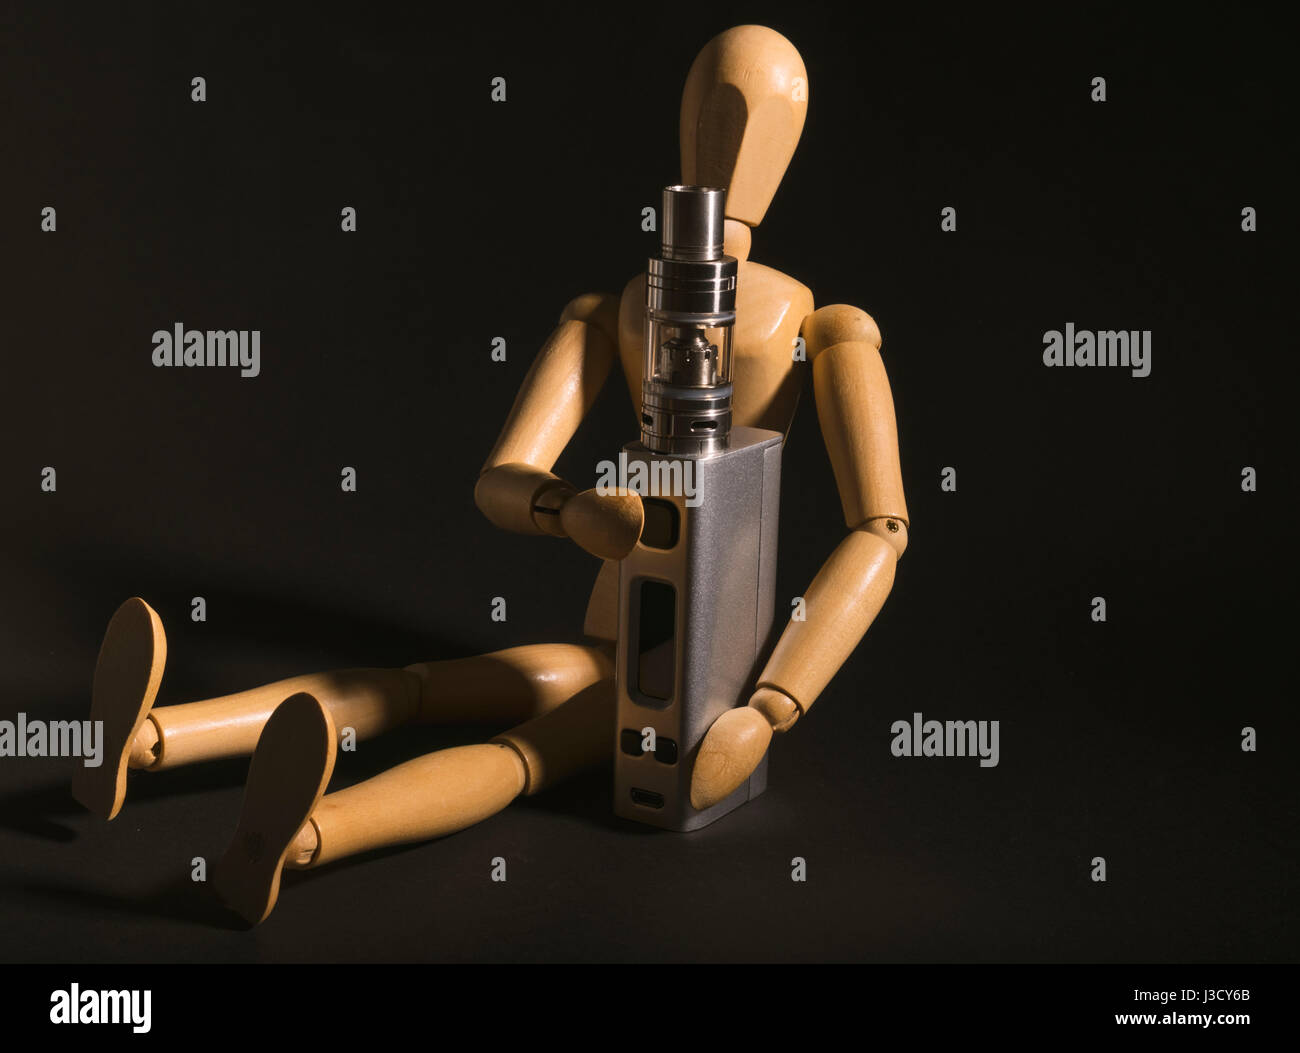 Isolated wooden man holding an electronic device or vaping e cig. - Stock Image